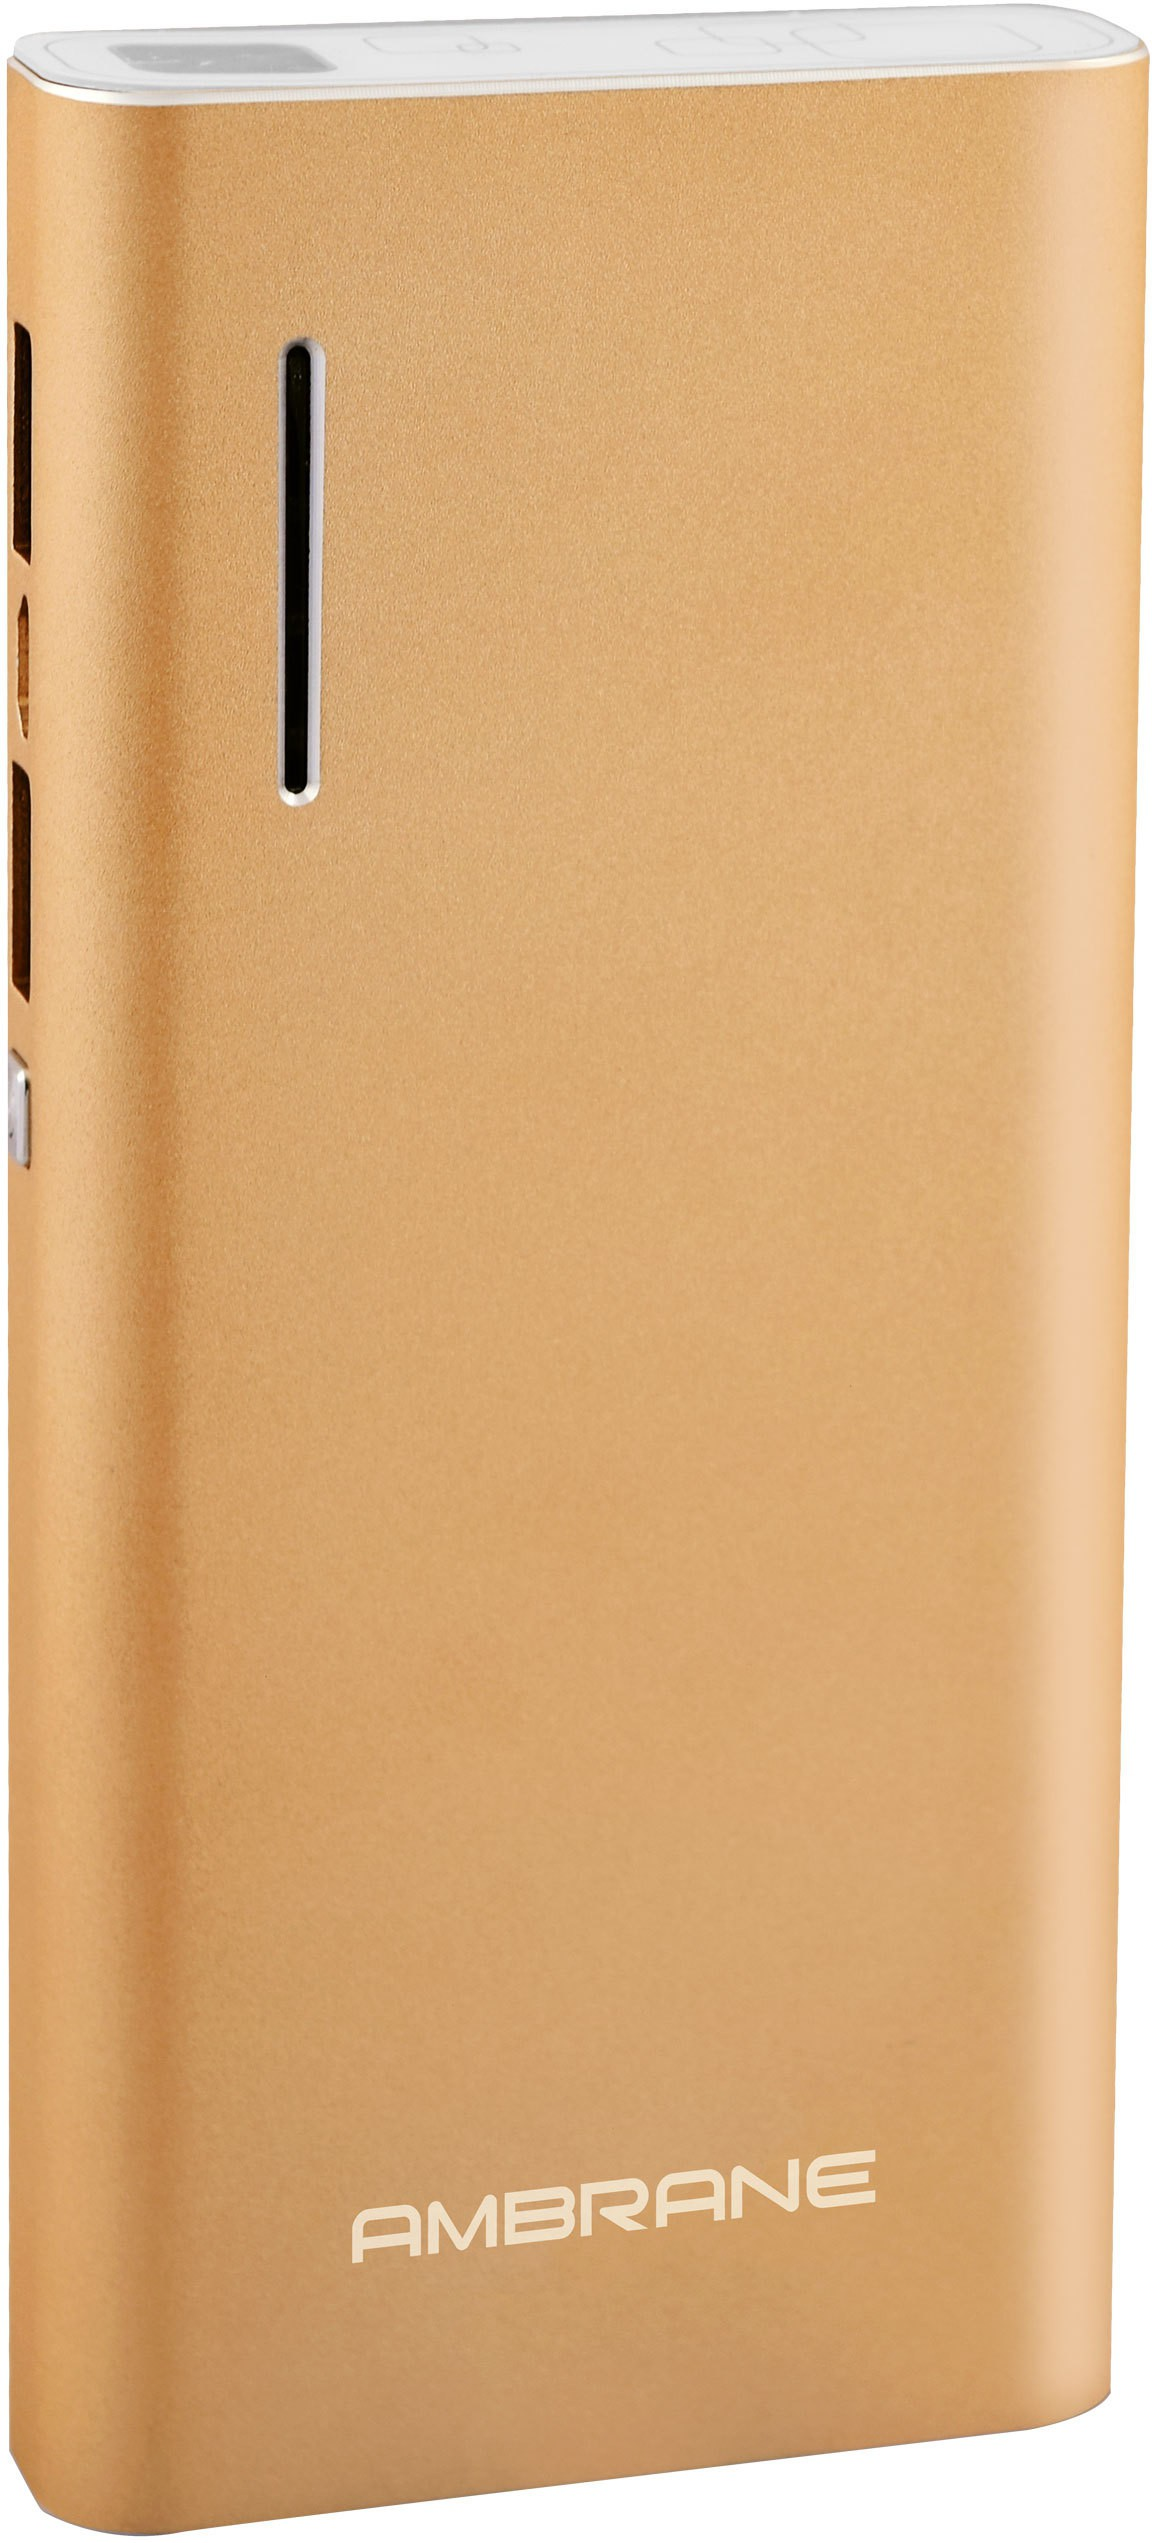 Ambrane P-1313 NA 13000 mAh Power Bank(Gold, Lithium-ion)